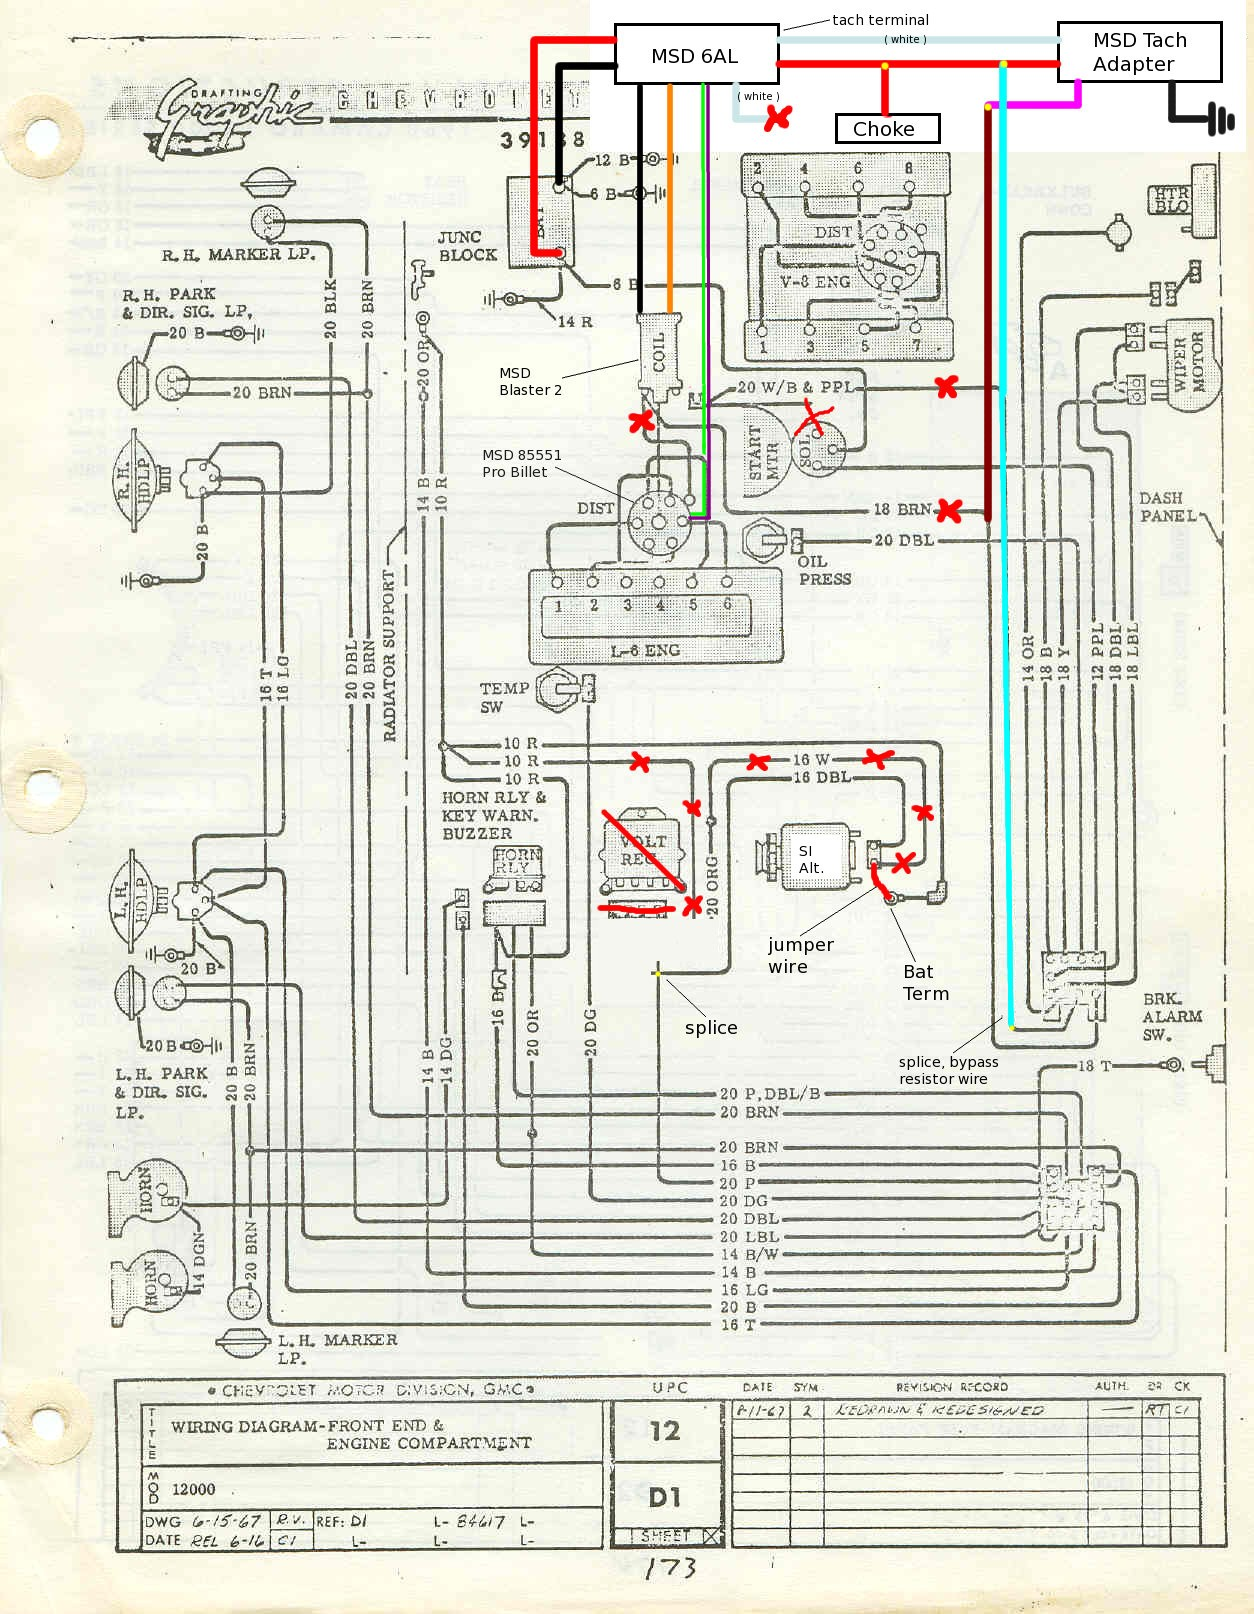 1971 firebird wire diagram auto electrical wiring diagram u2022 rh 6weeks co uk